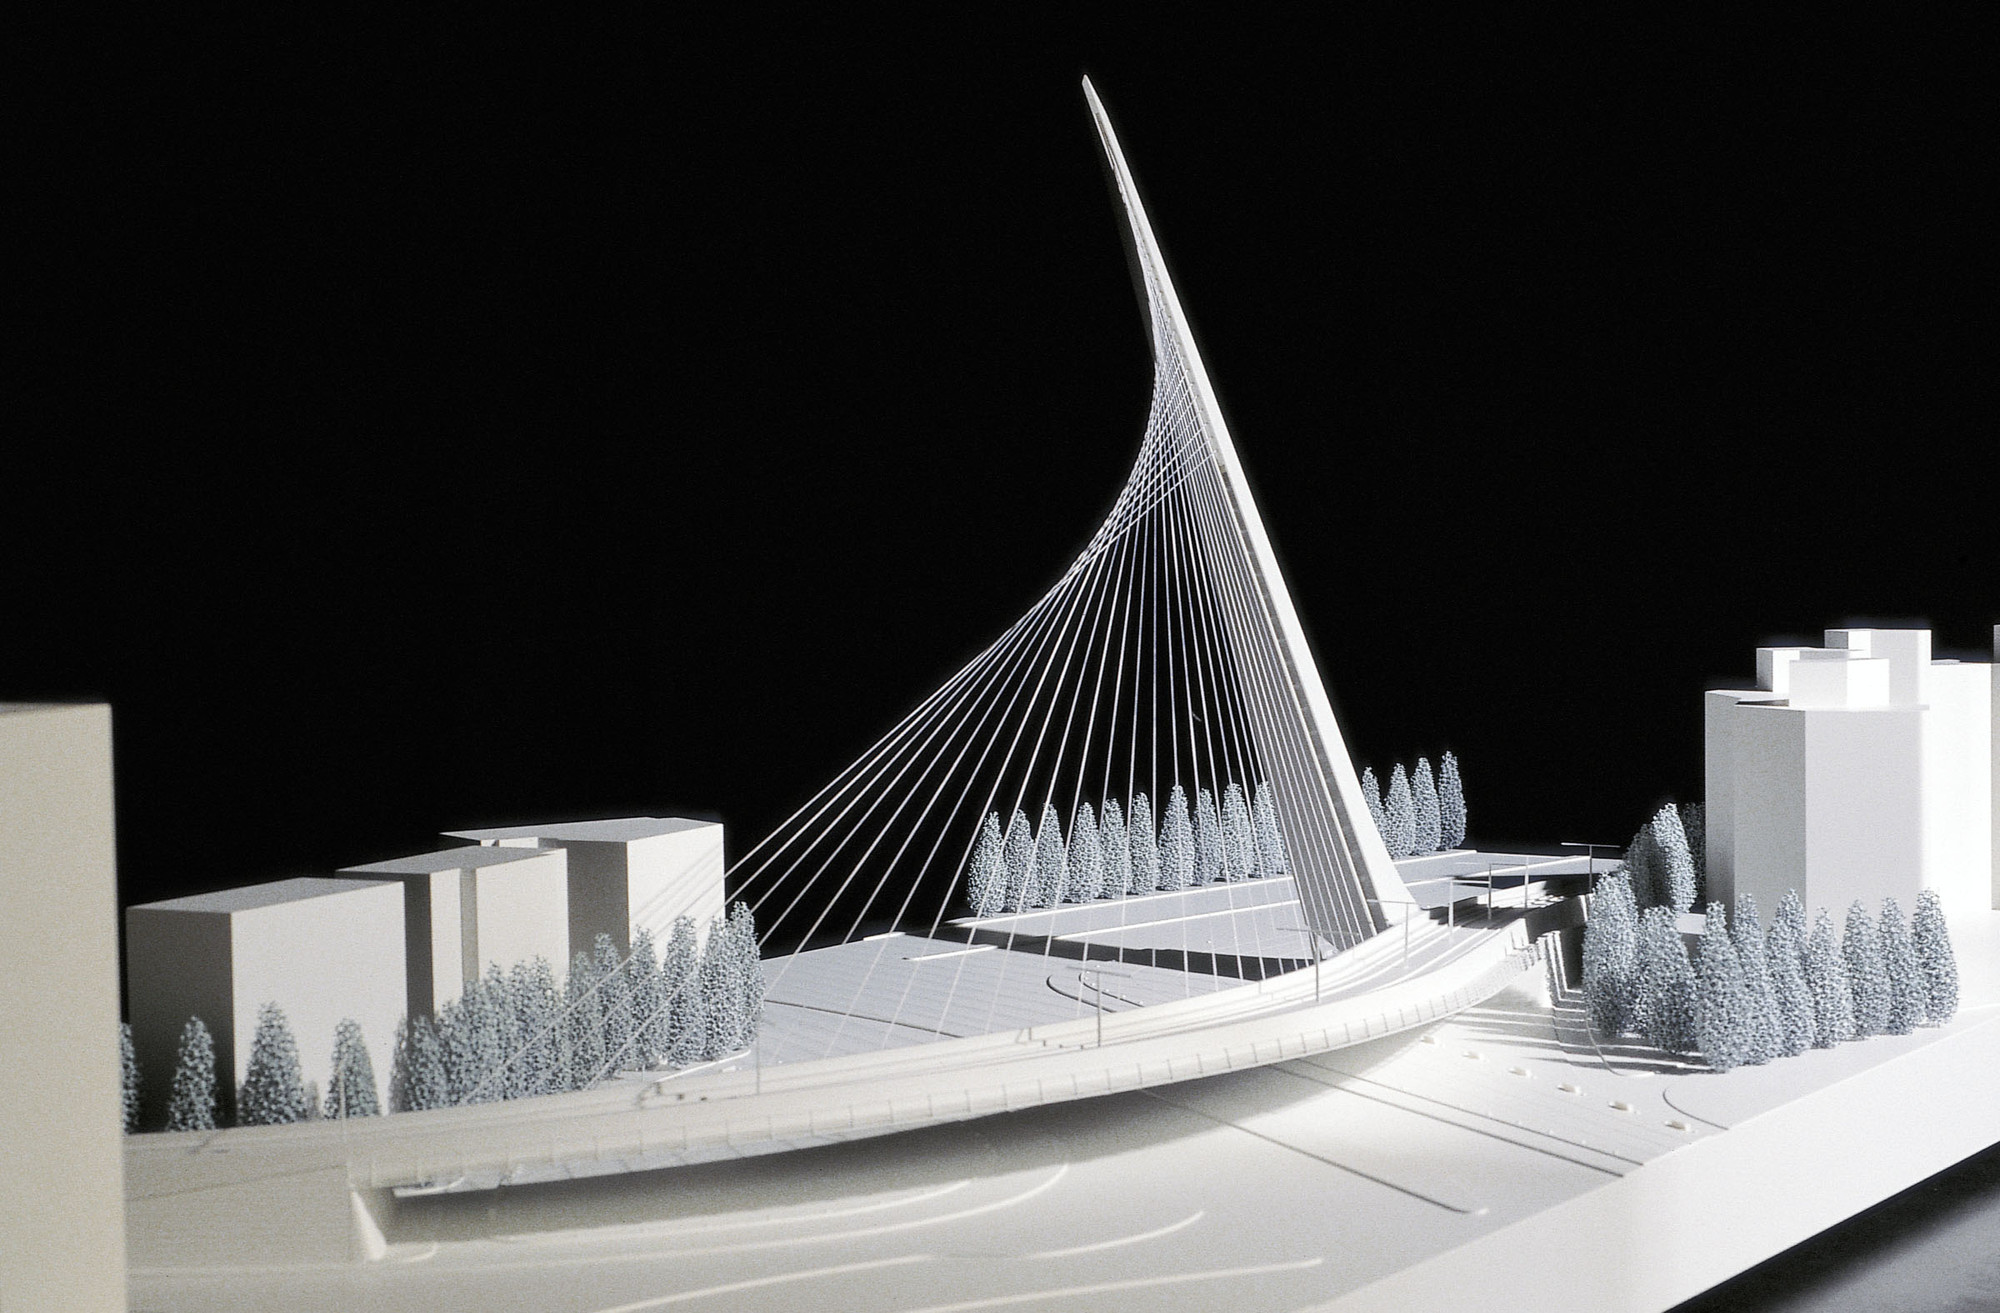 Santiago Calatrava: The Metamorphosis of Space, Property of Studio Calatrava © Santiago Calatrava